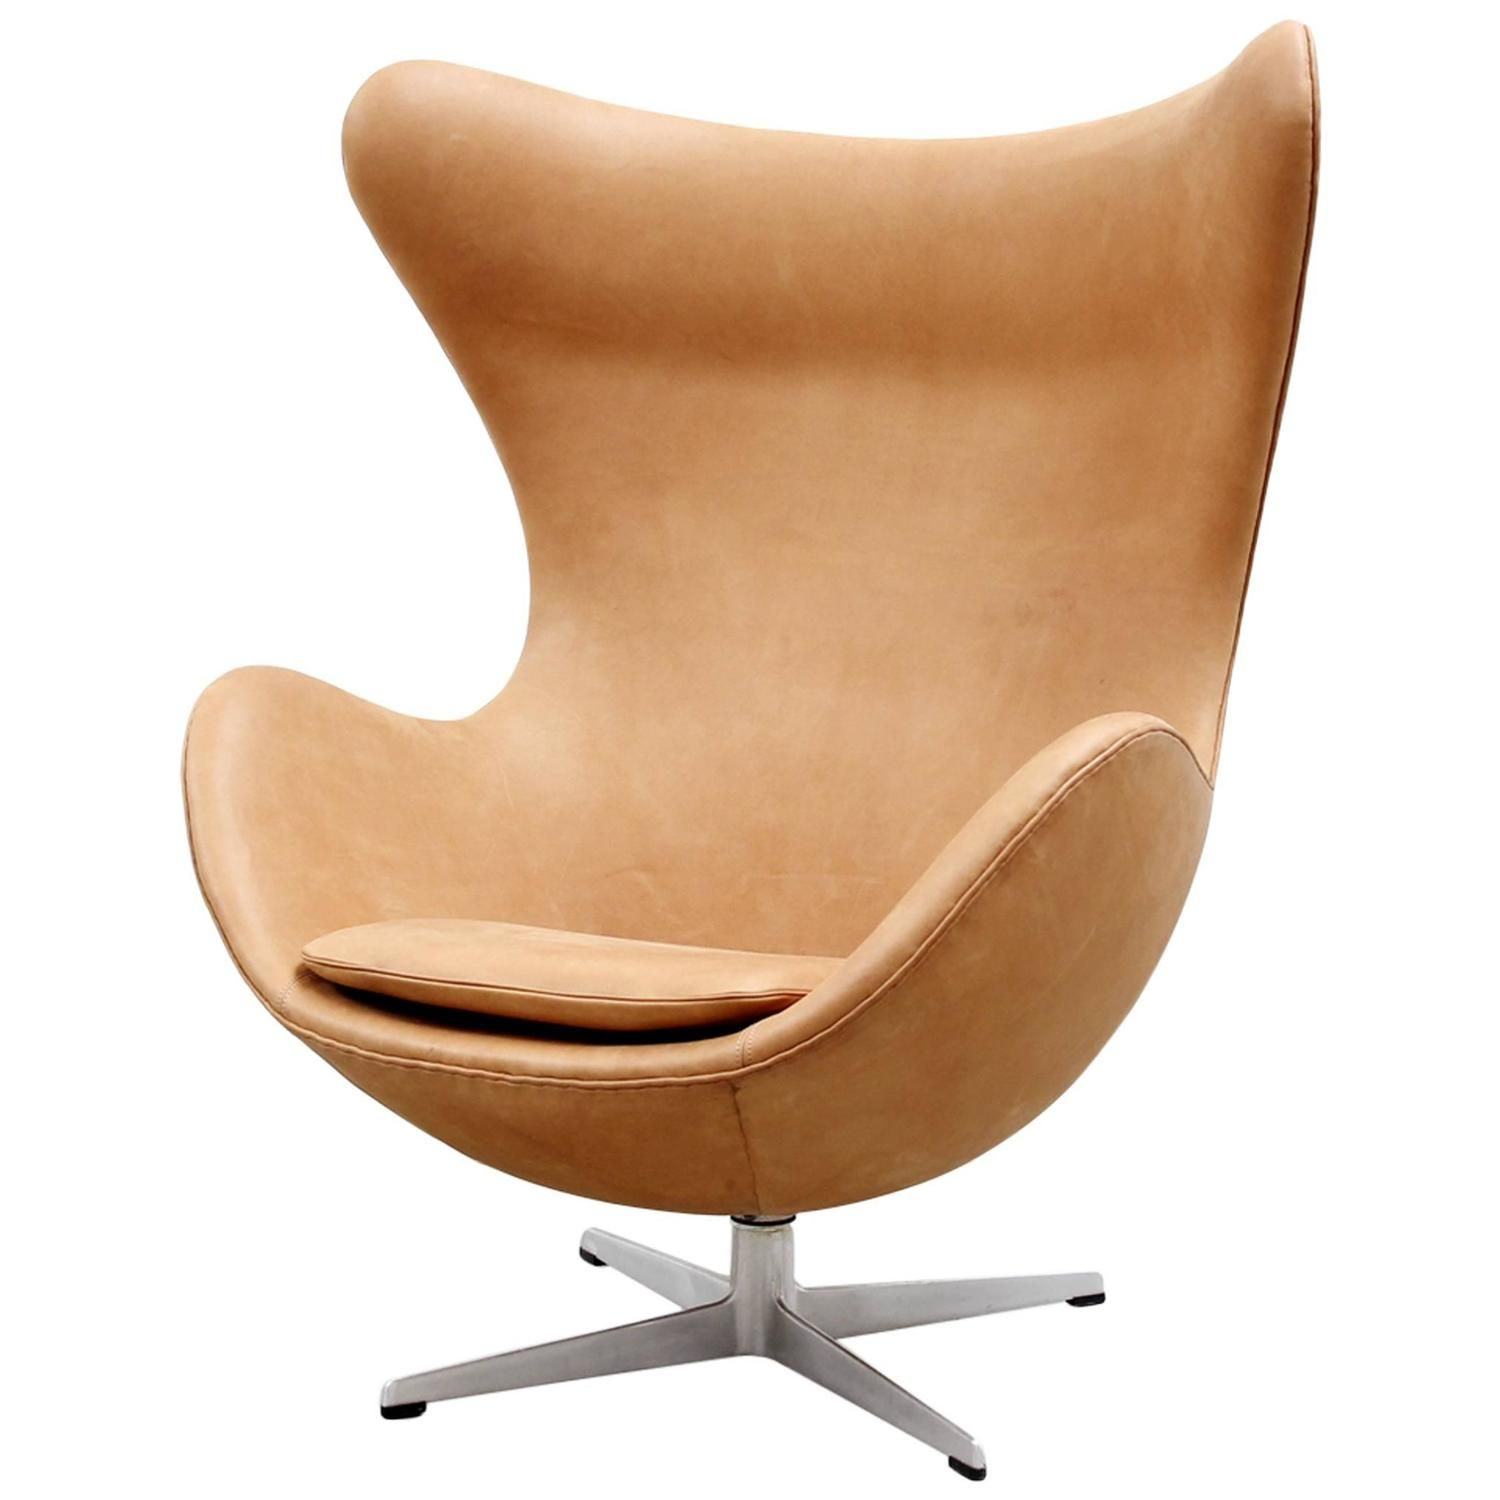 Cognac Leather Egg Chairarne Jacobsen For Fritz Hansen, 1966 Pertaining To Alder Grande Ii Swivel Chairs (View 12 of 25)